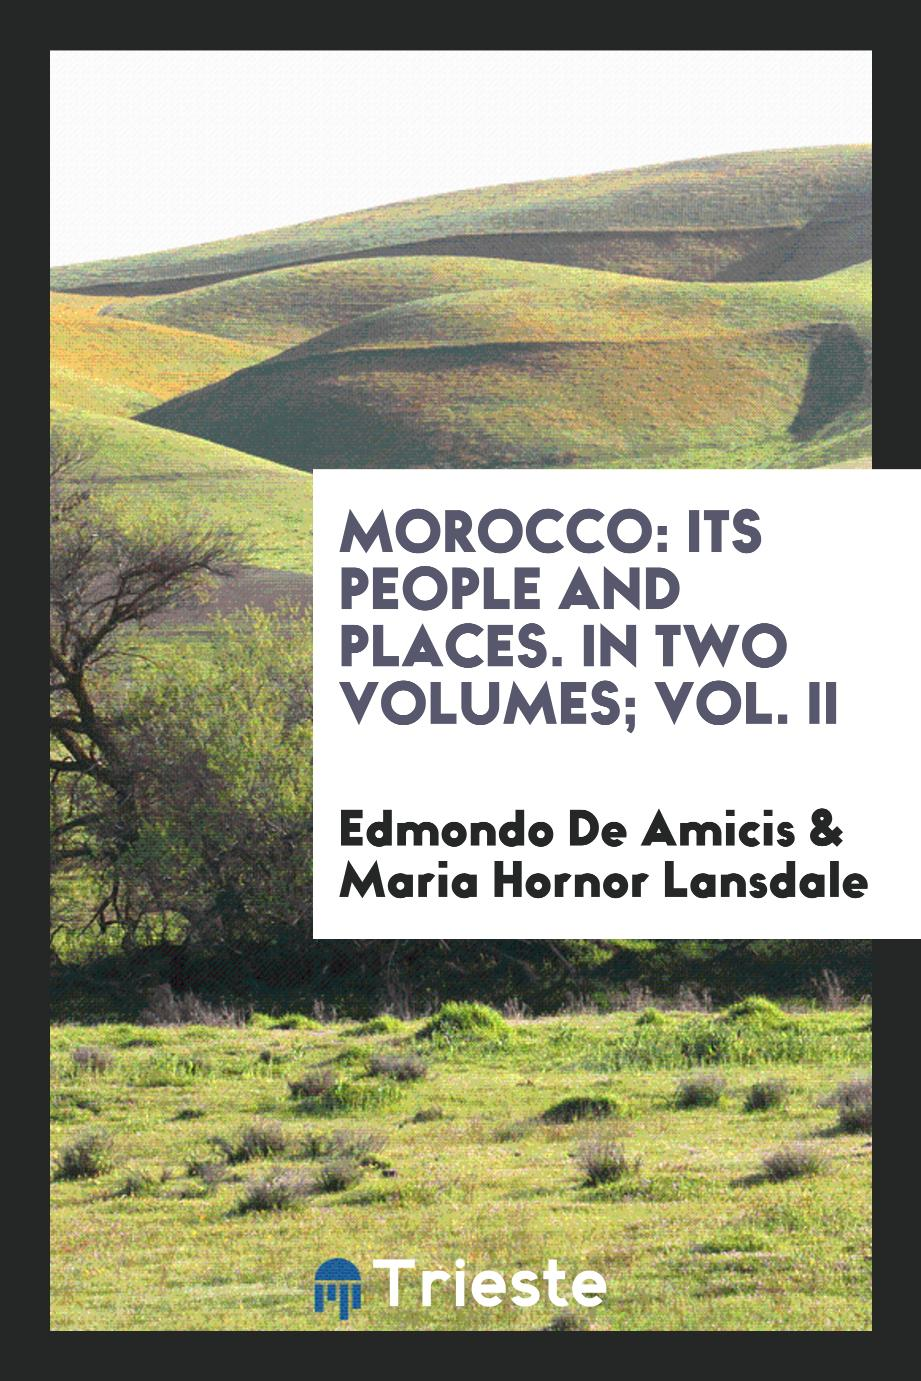 Morocco: Its People and Places. In Two Volumes; Vol. II